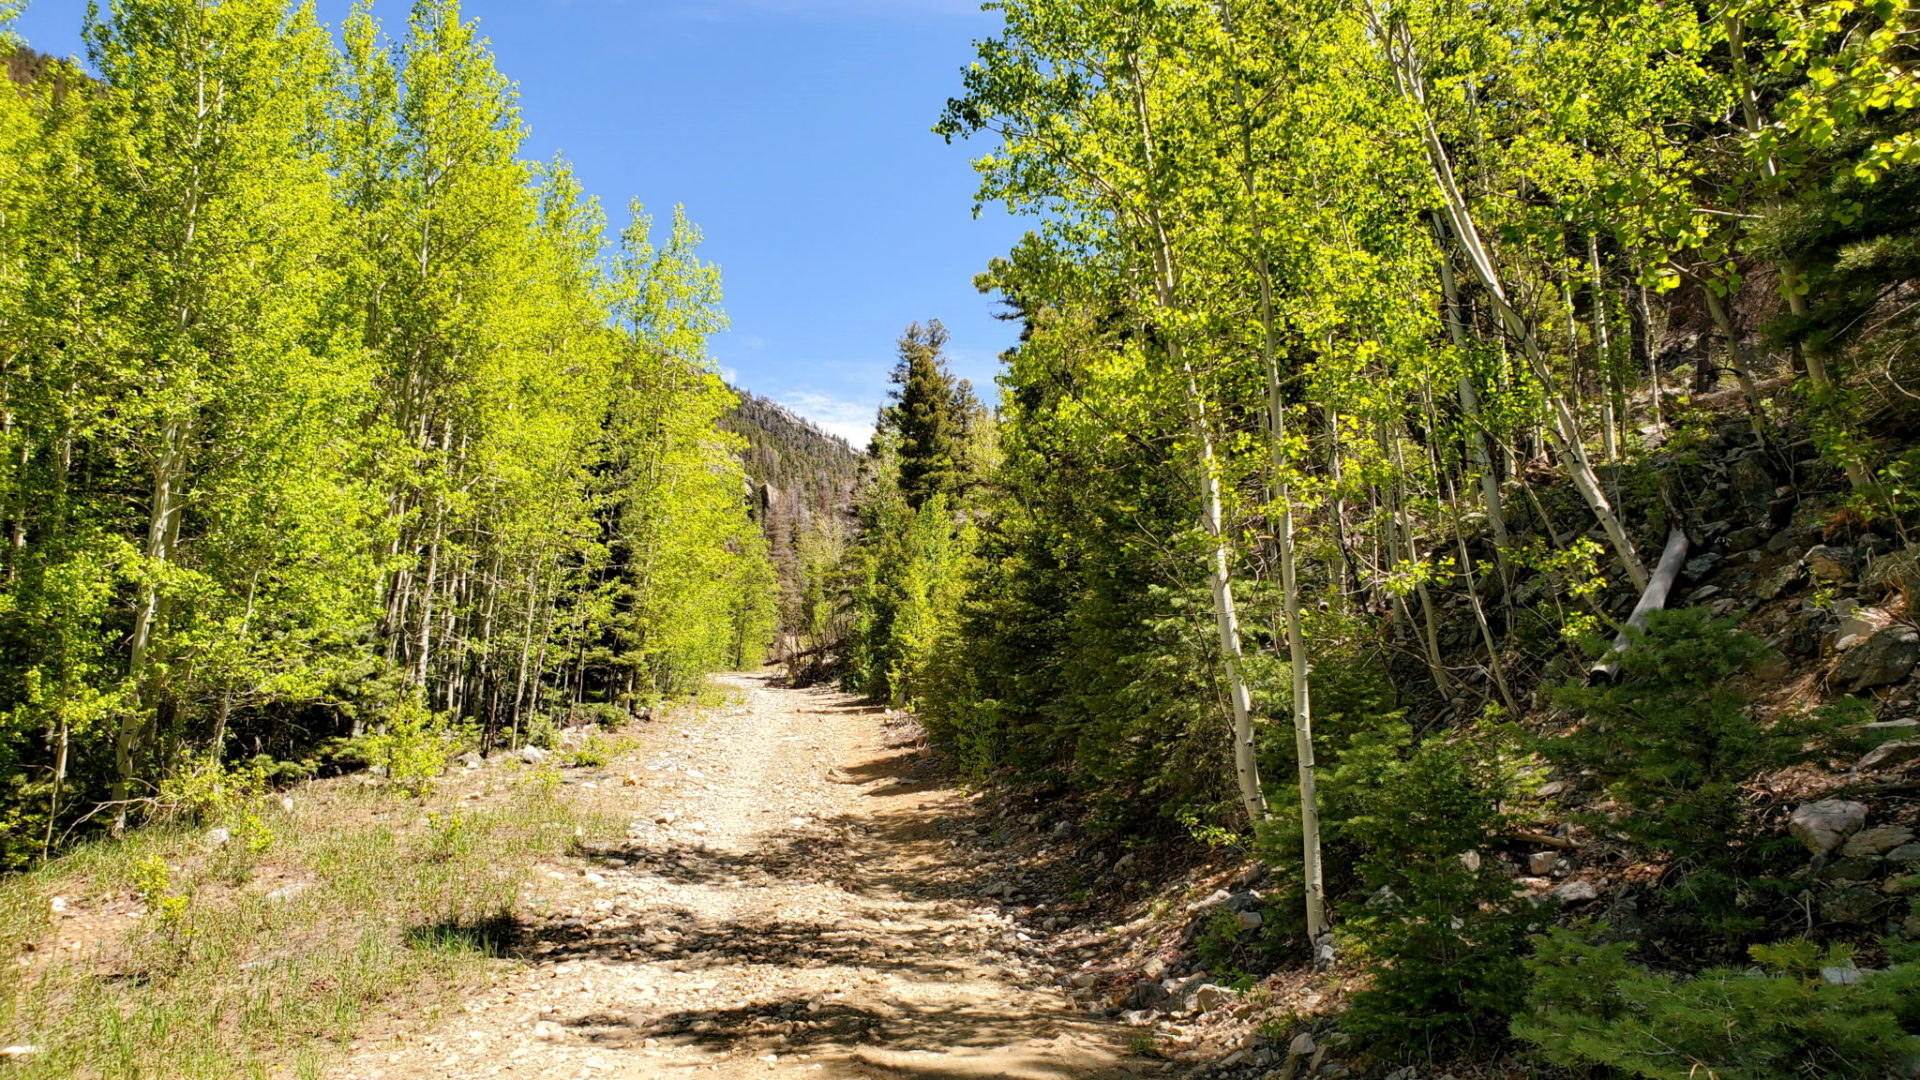 The trail entered thick forests as it climbed to the pass